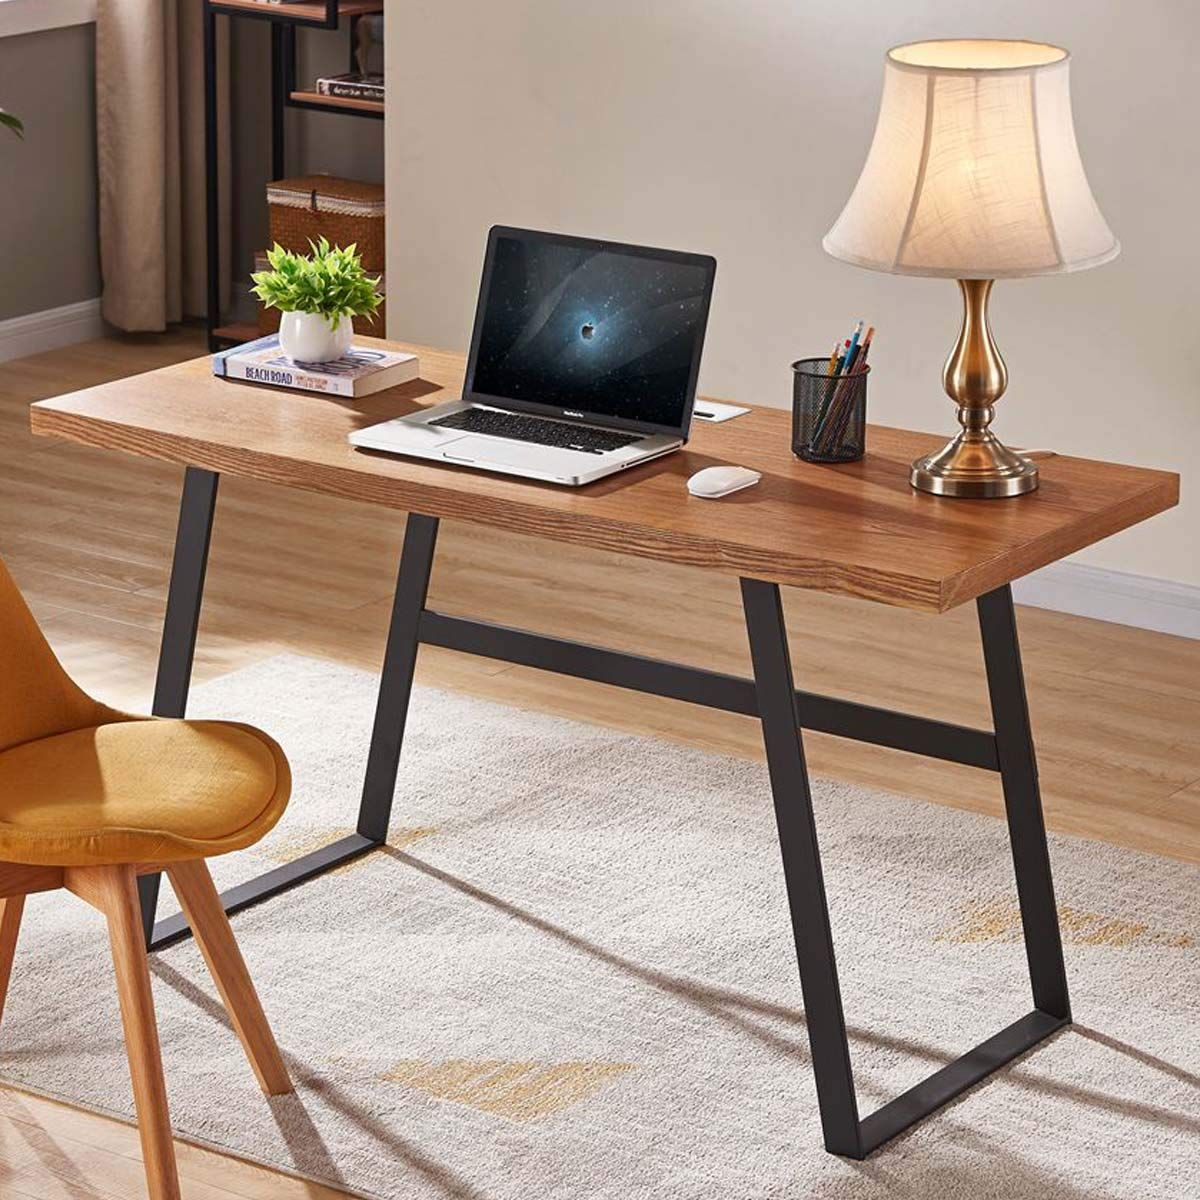 Bon Augure Industrial Computer Desk For Home Office Rustic